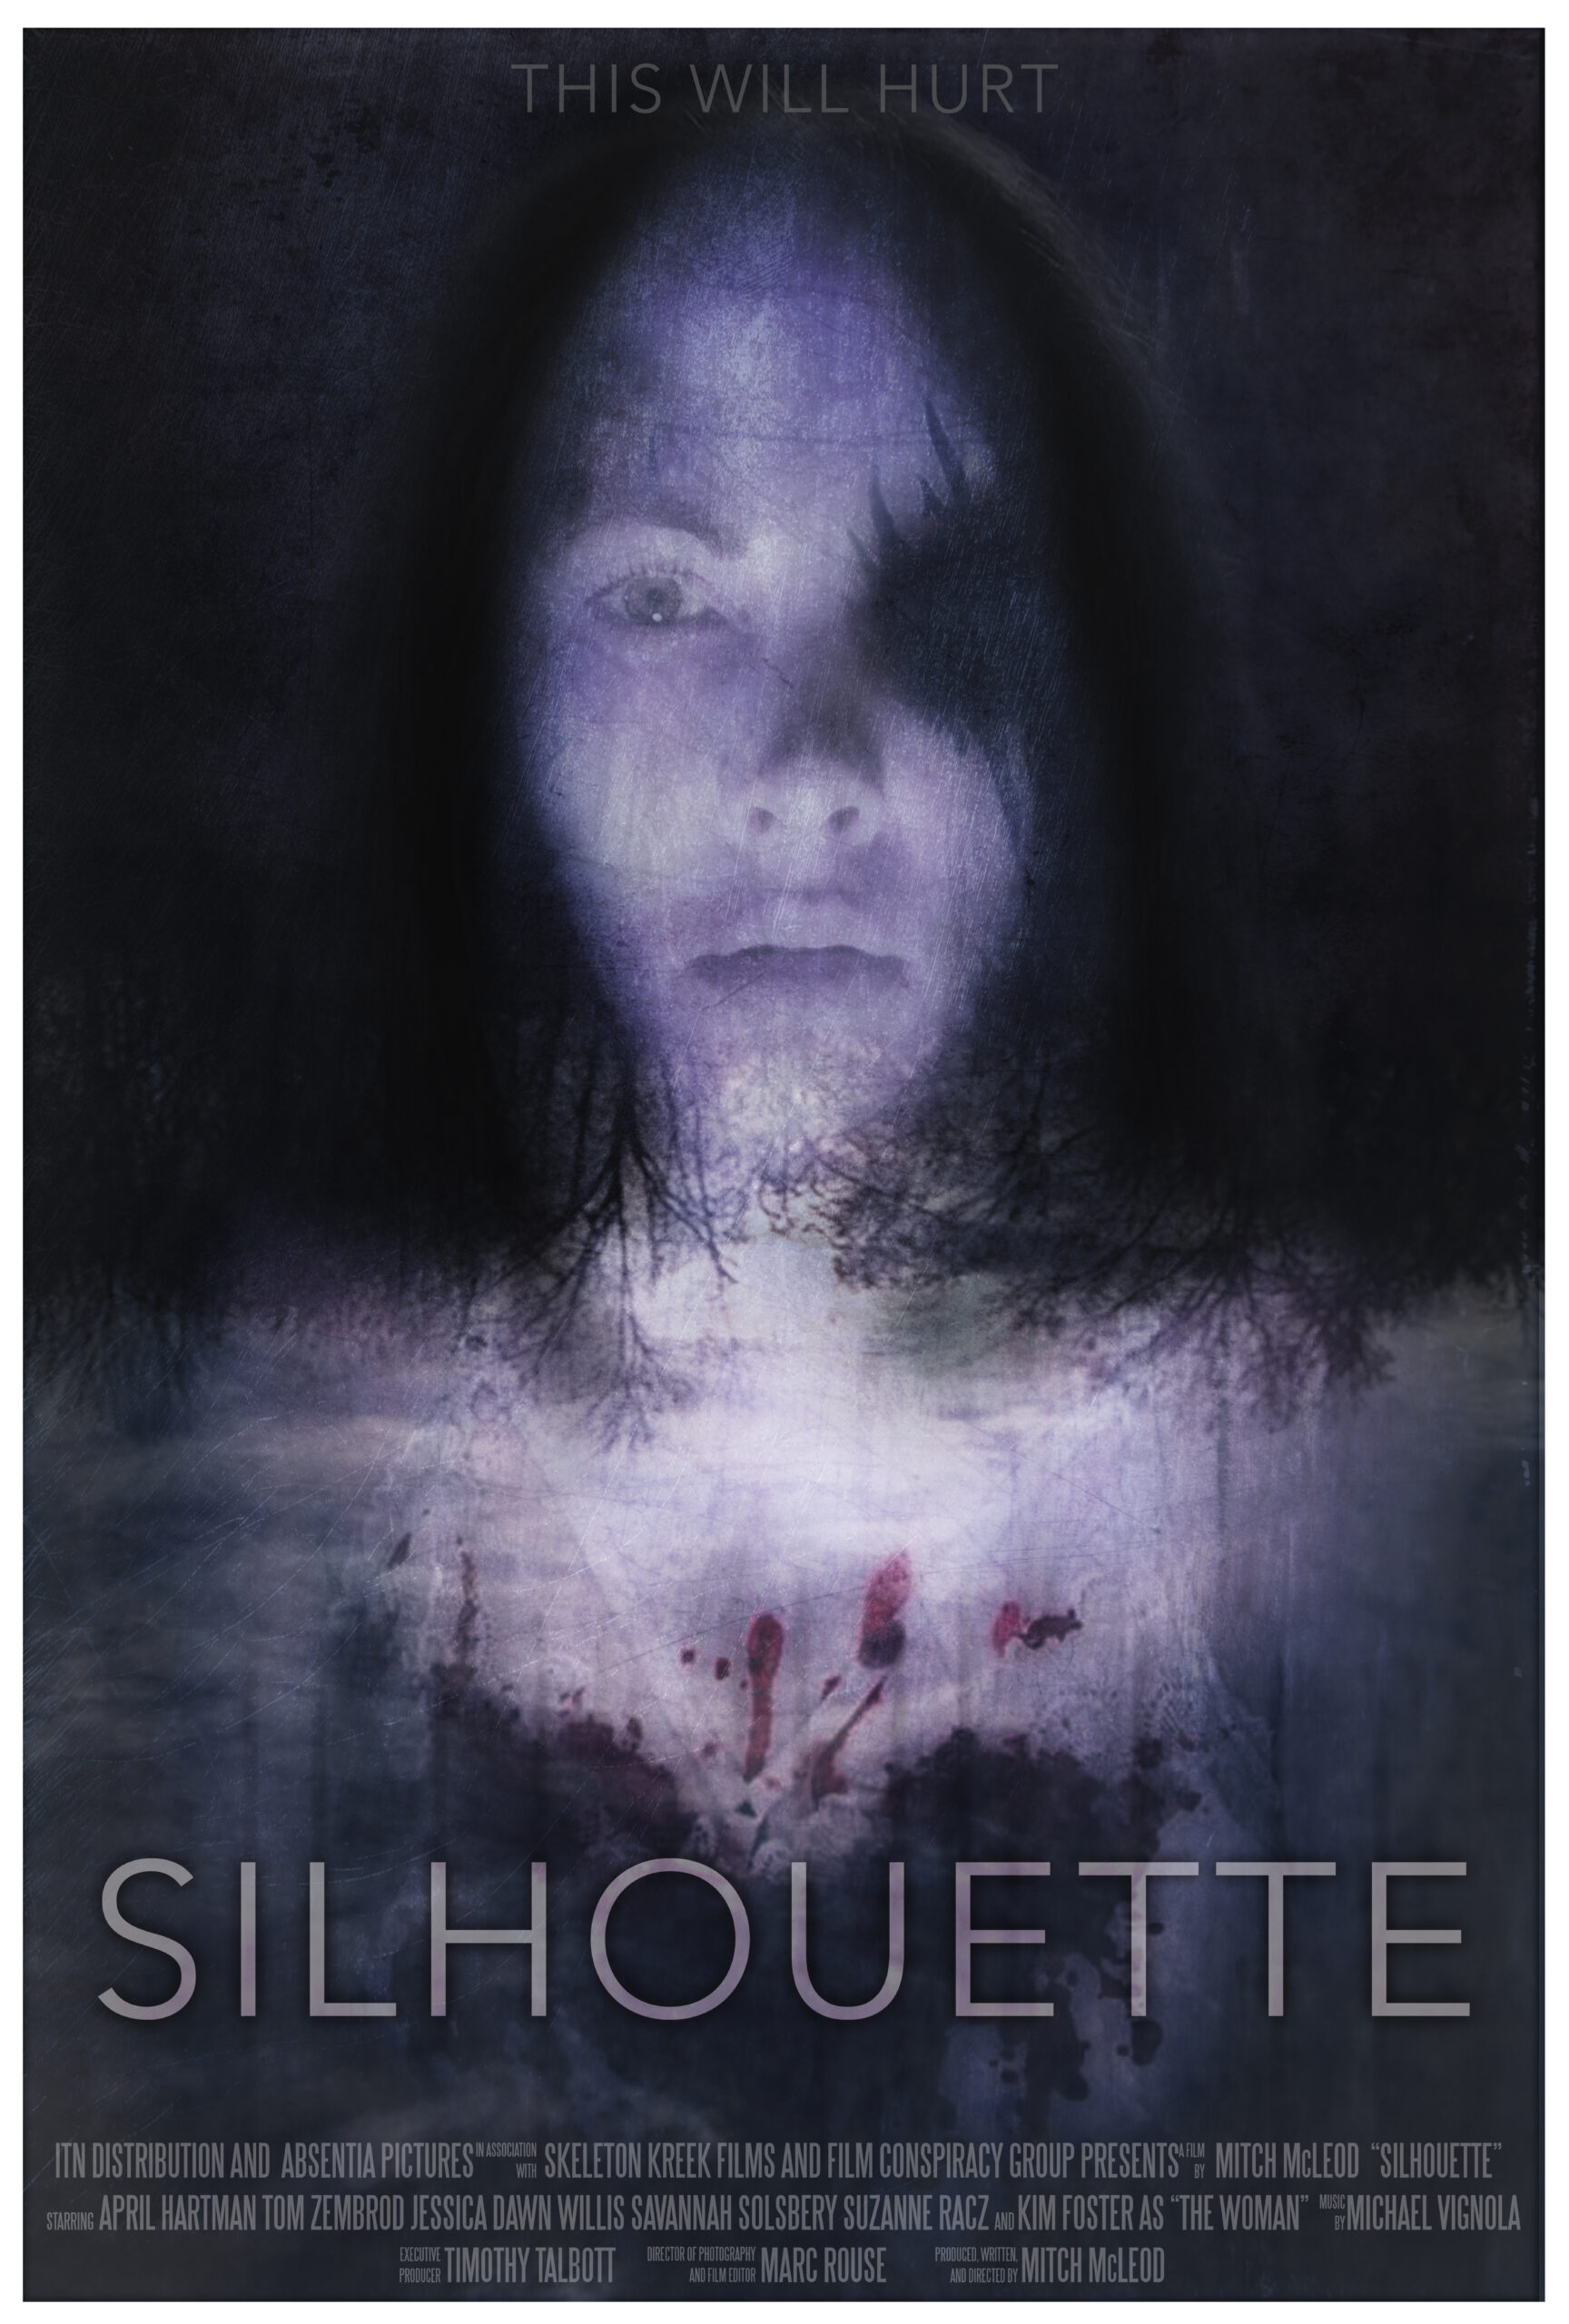 Film Review: SILHOUETTE (2019)